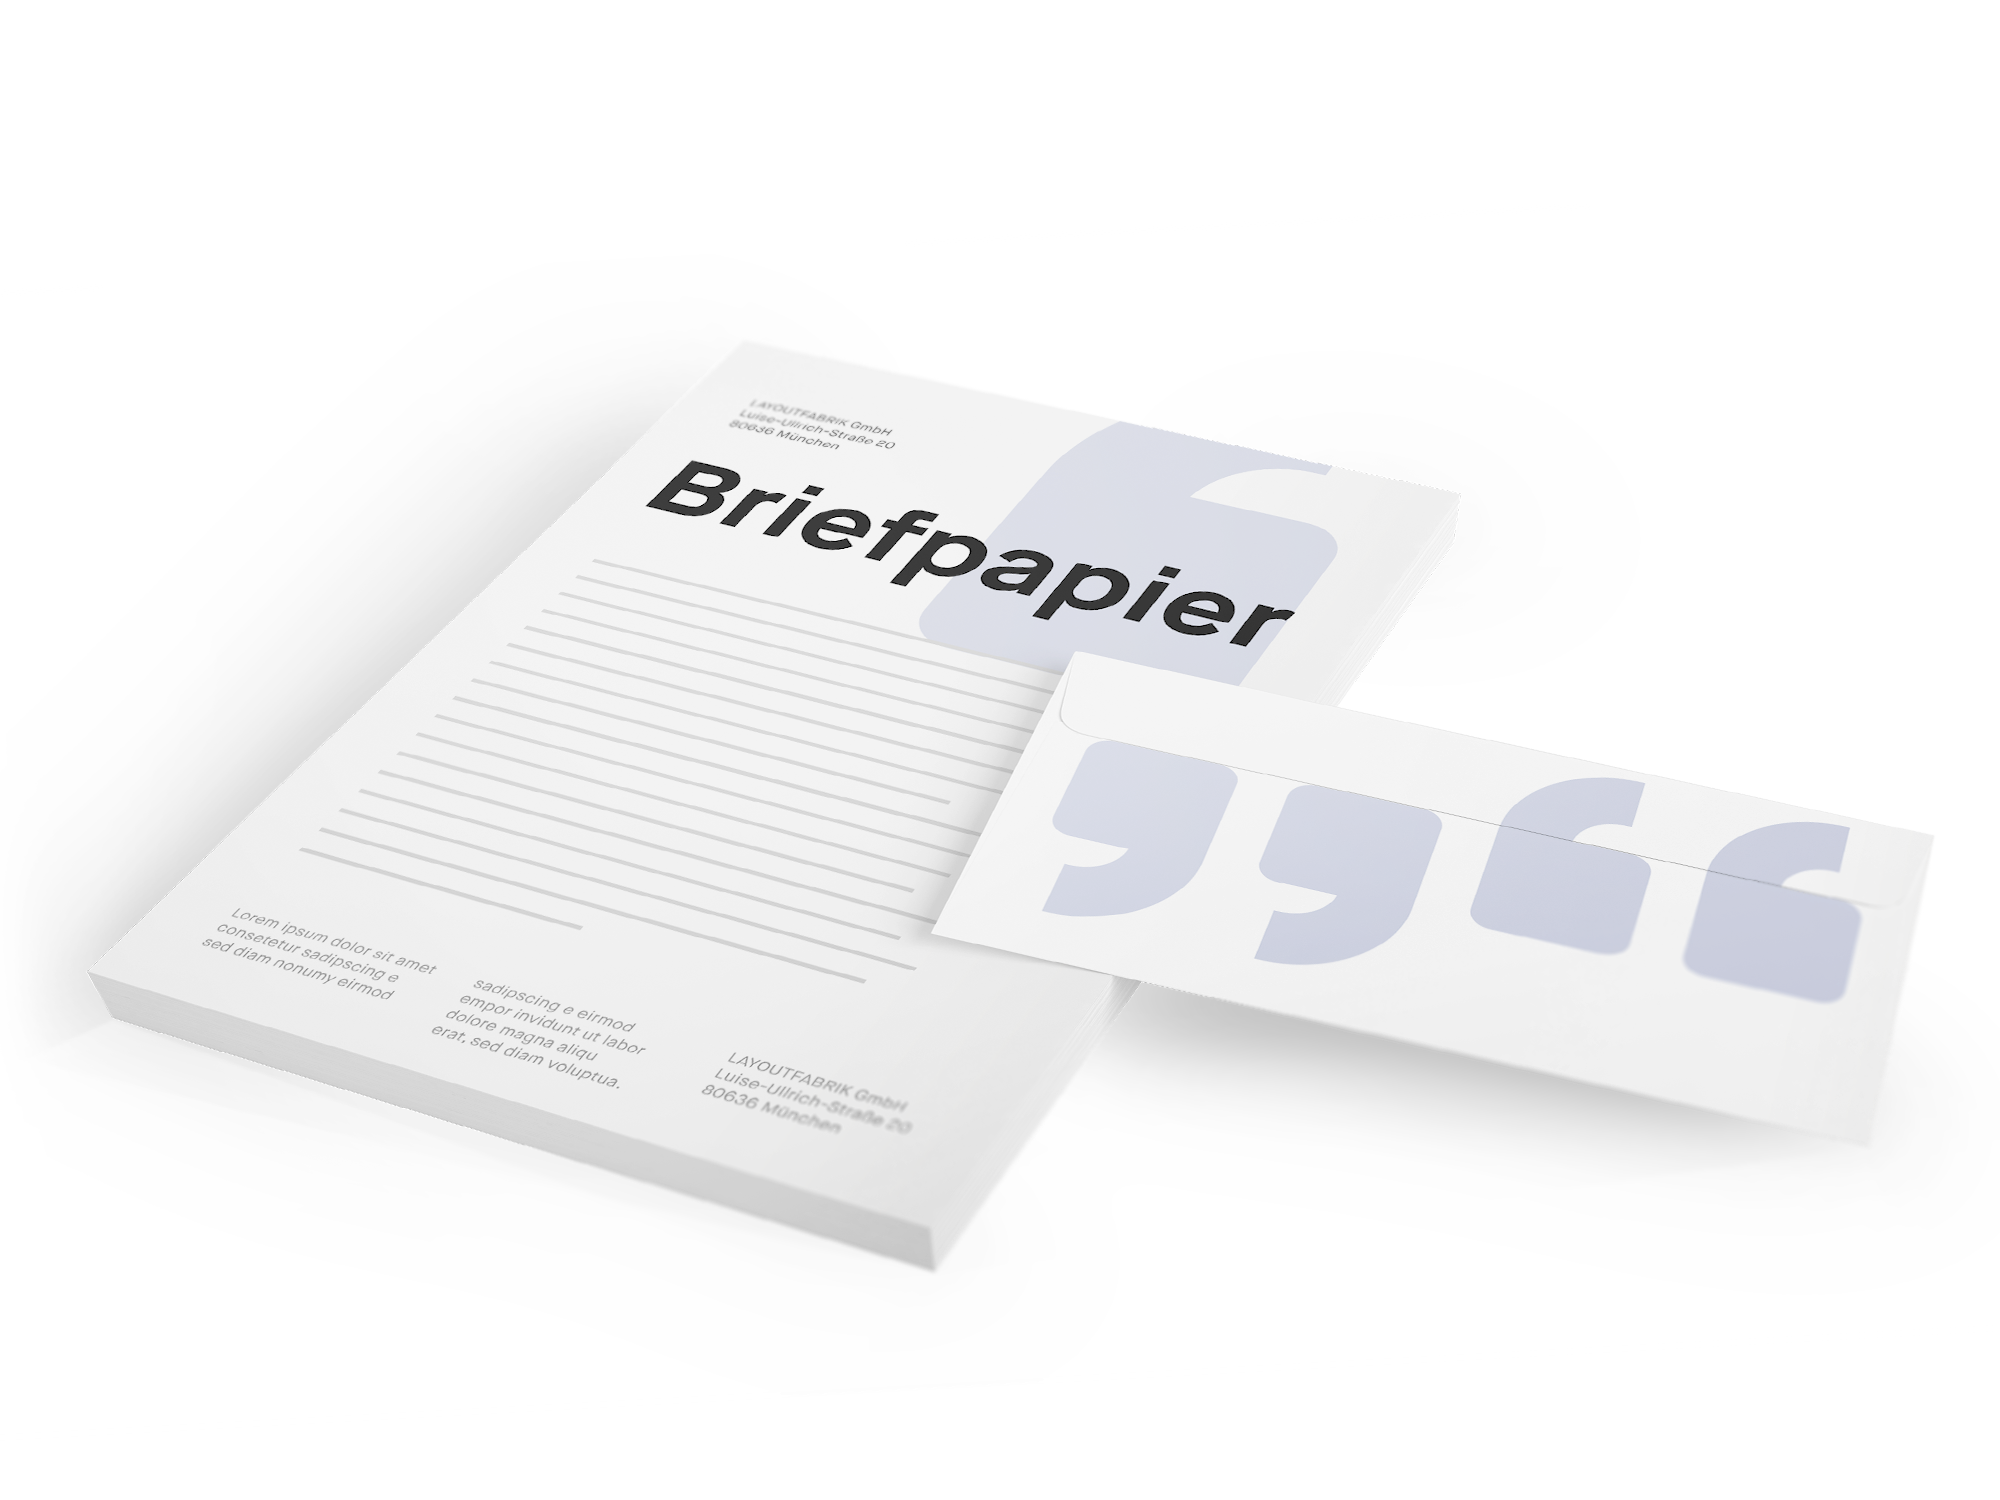 Briefpapier Layoutfabrik